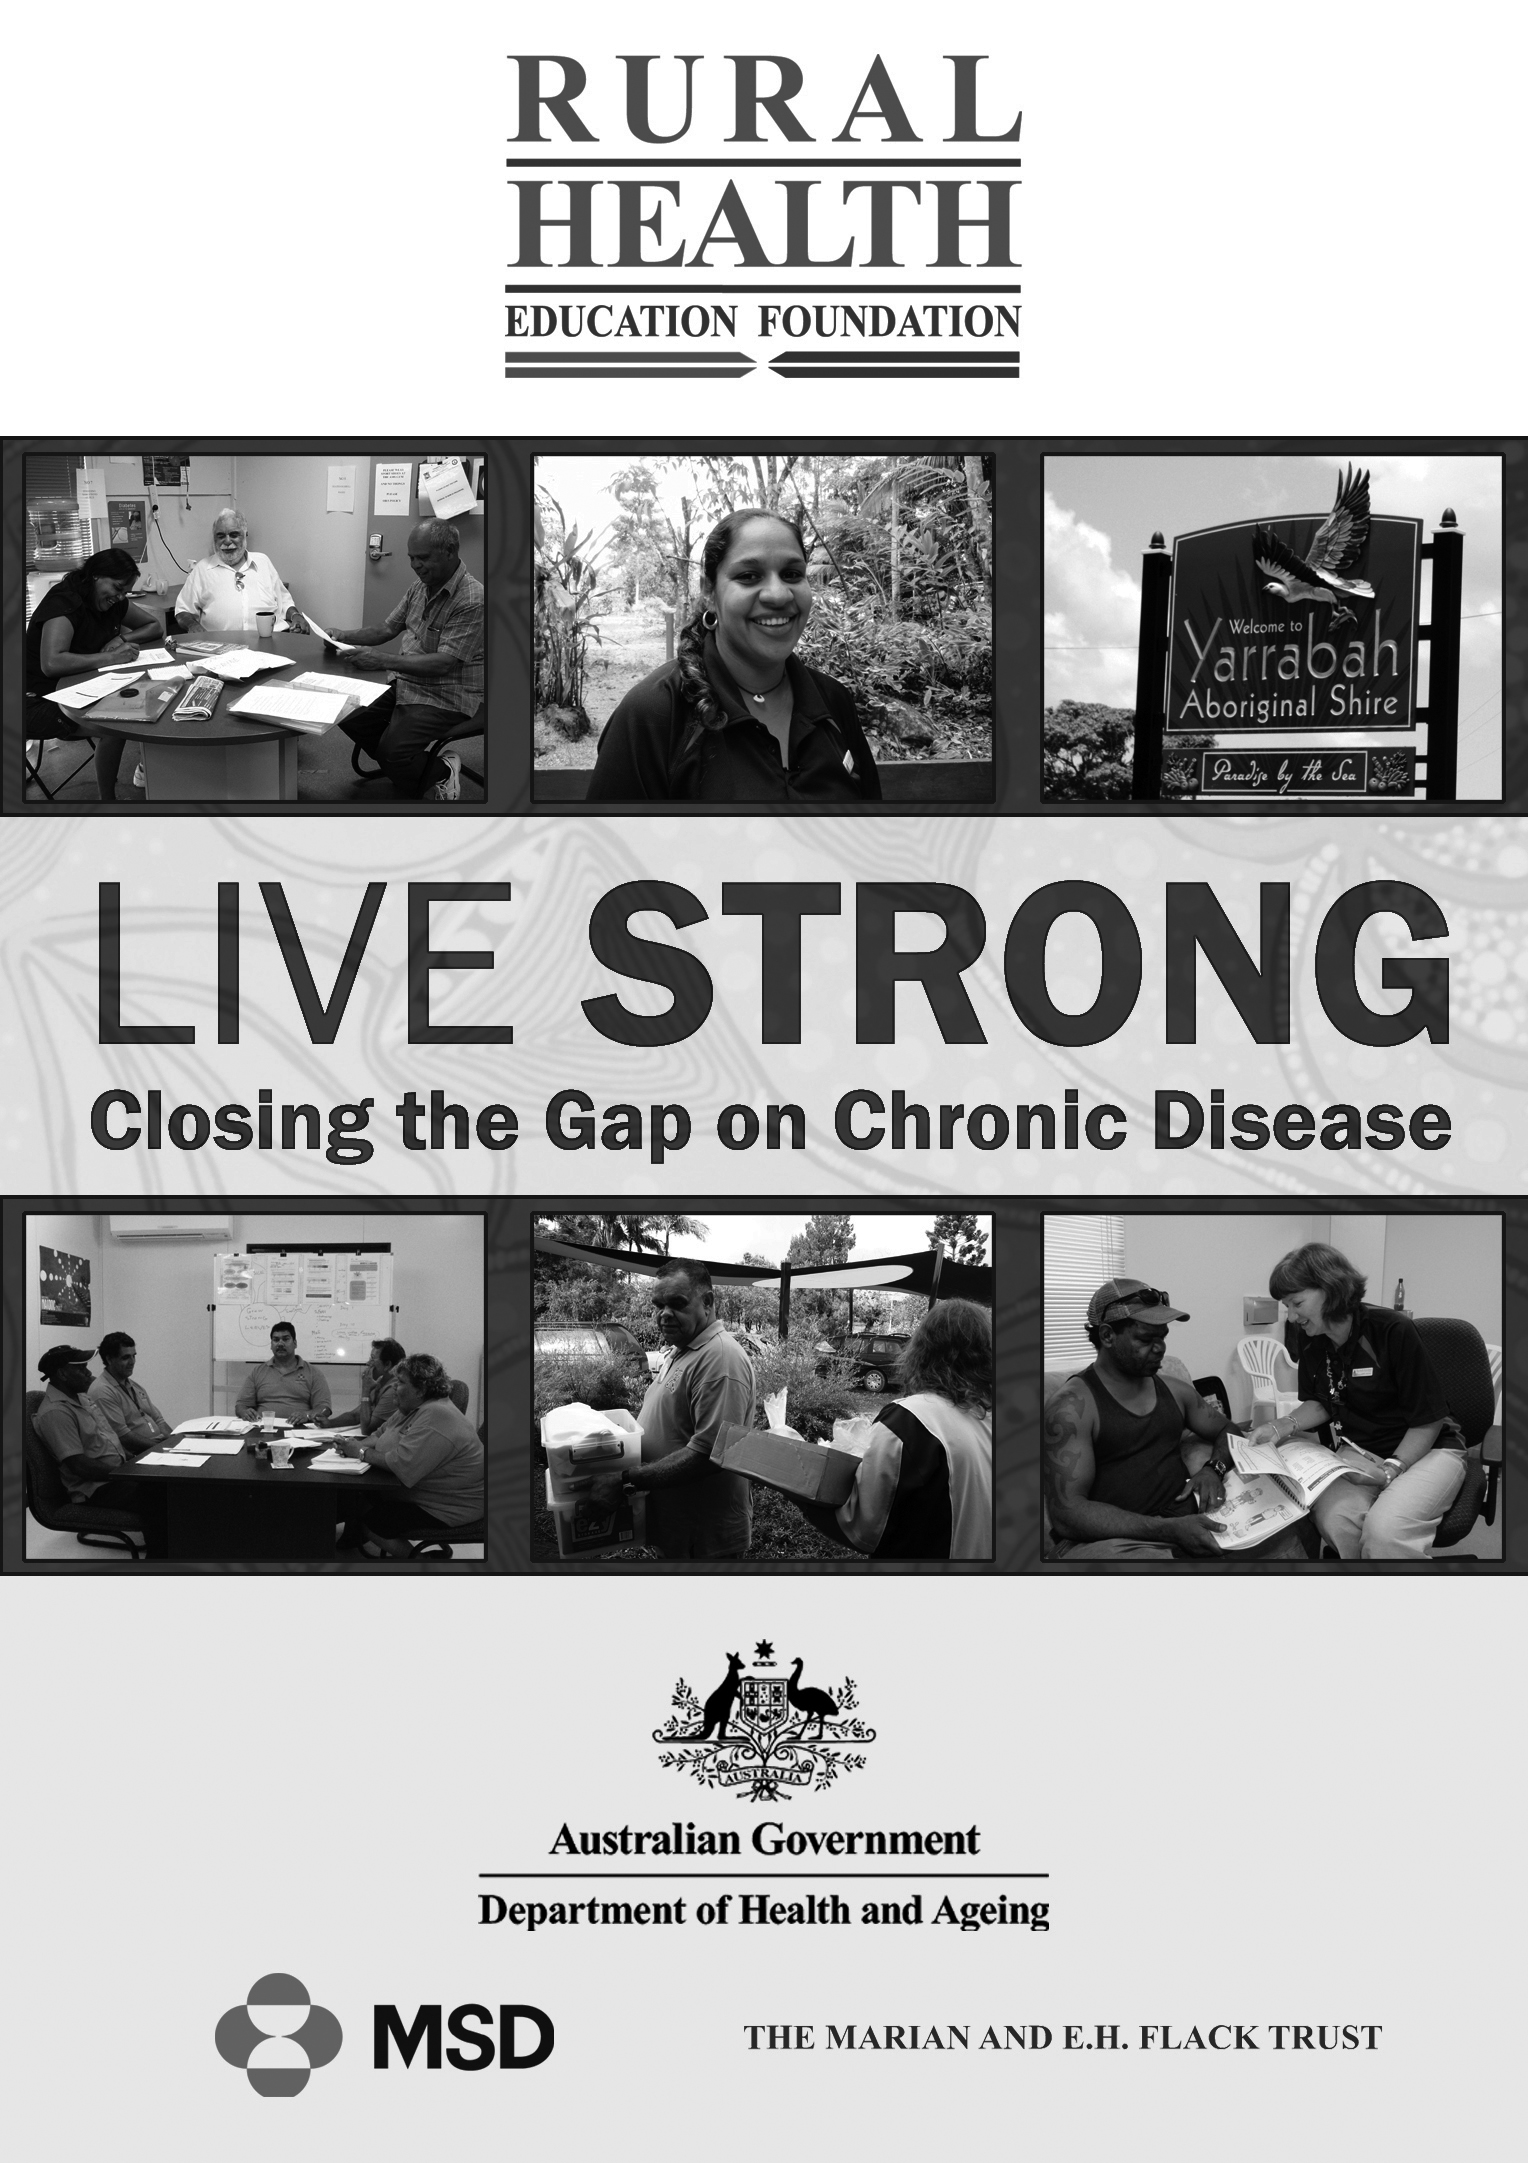 Live strong: closing the gap on chronic disease